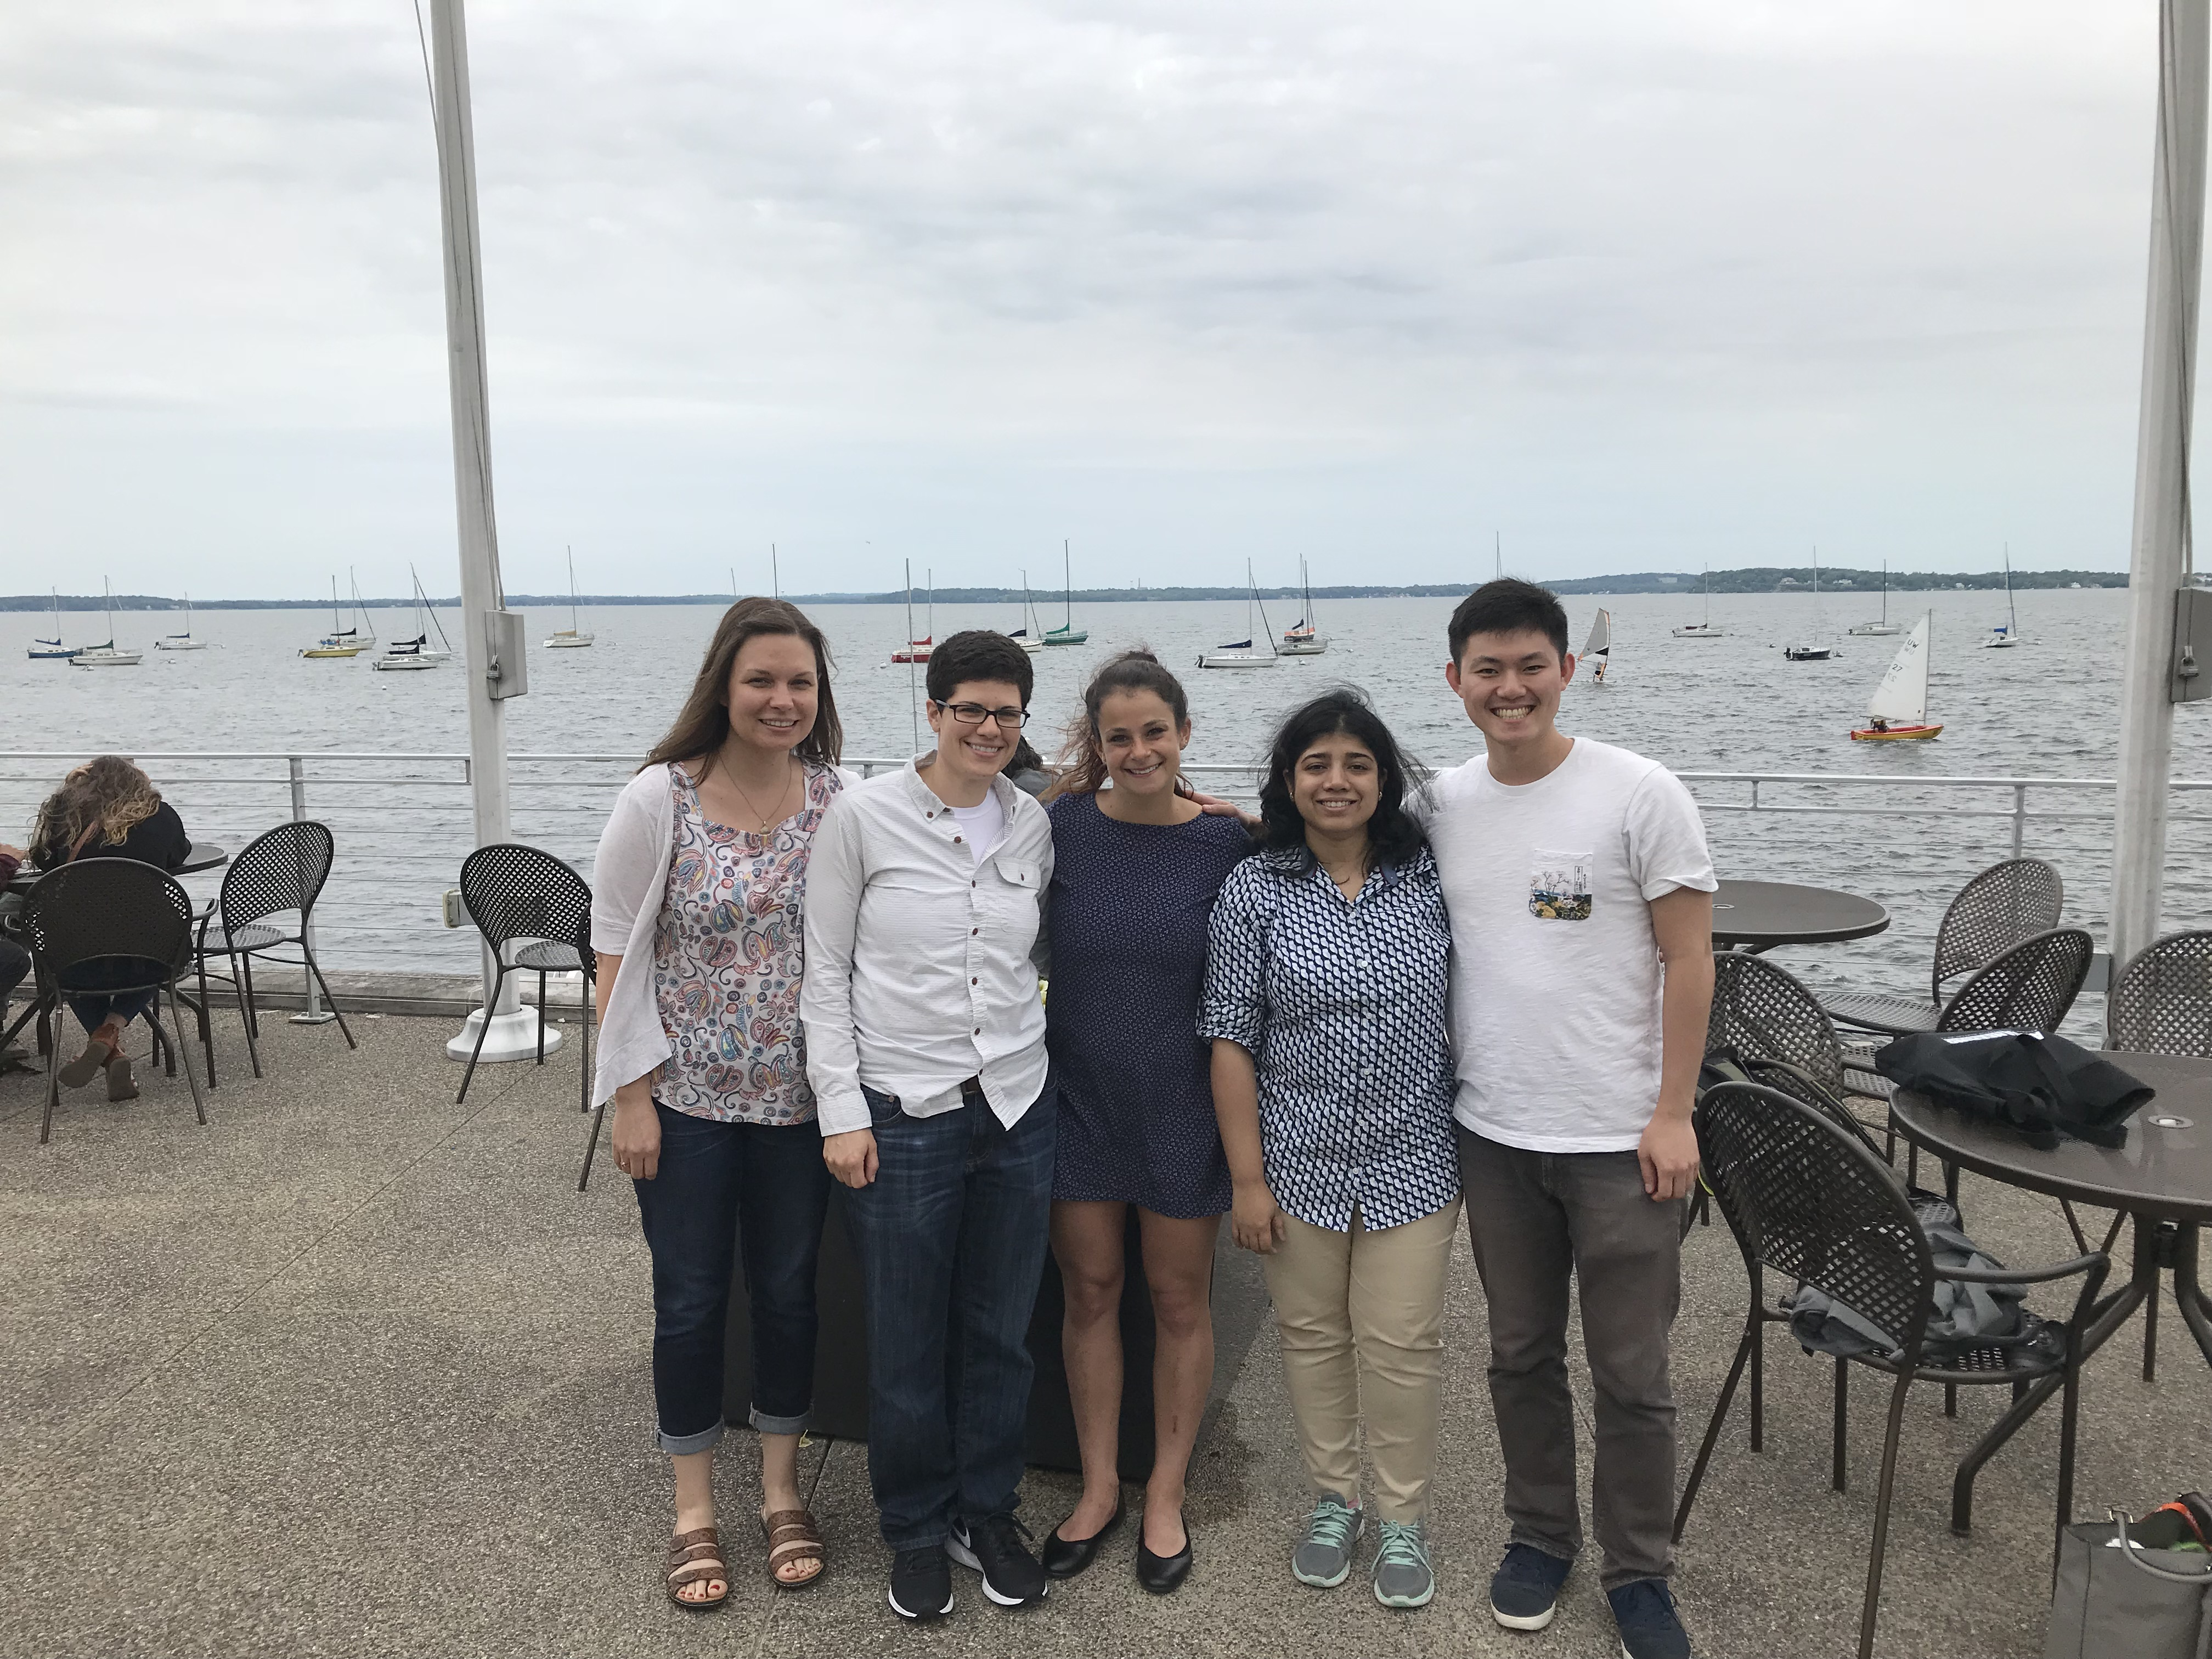 Drerup Lab staff in Madison, WI for the Zebrafish meeting.